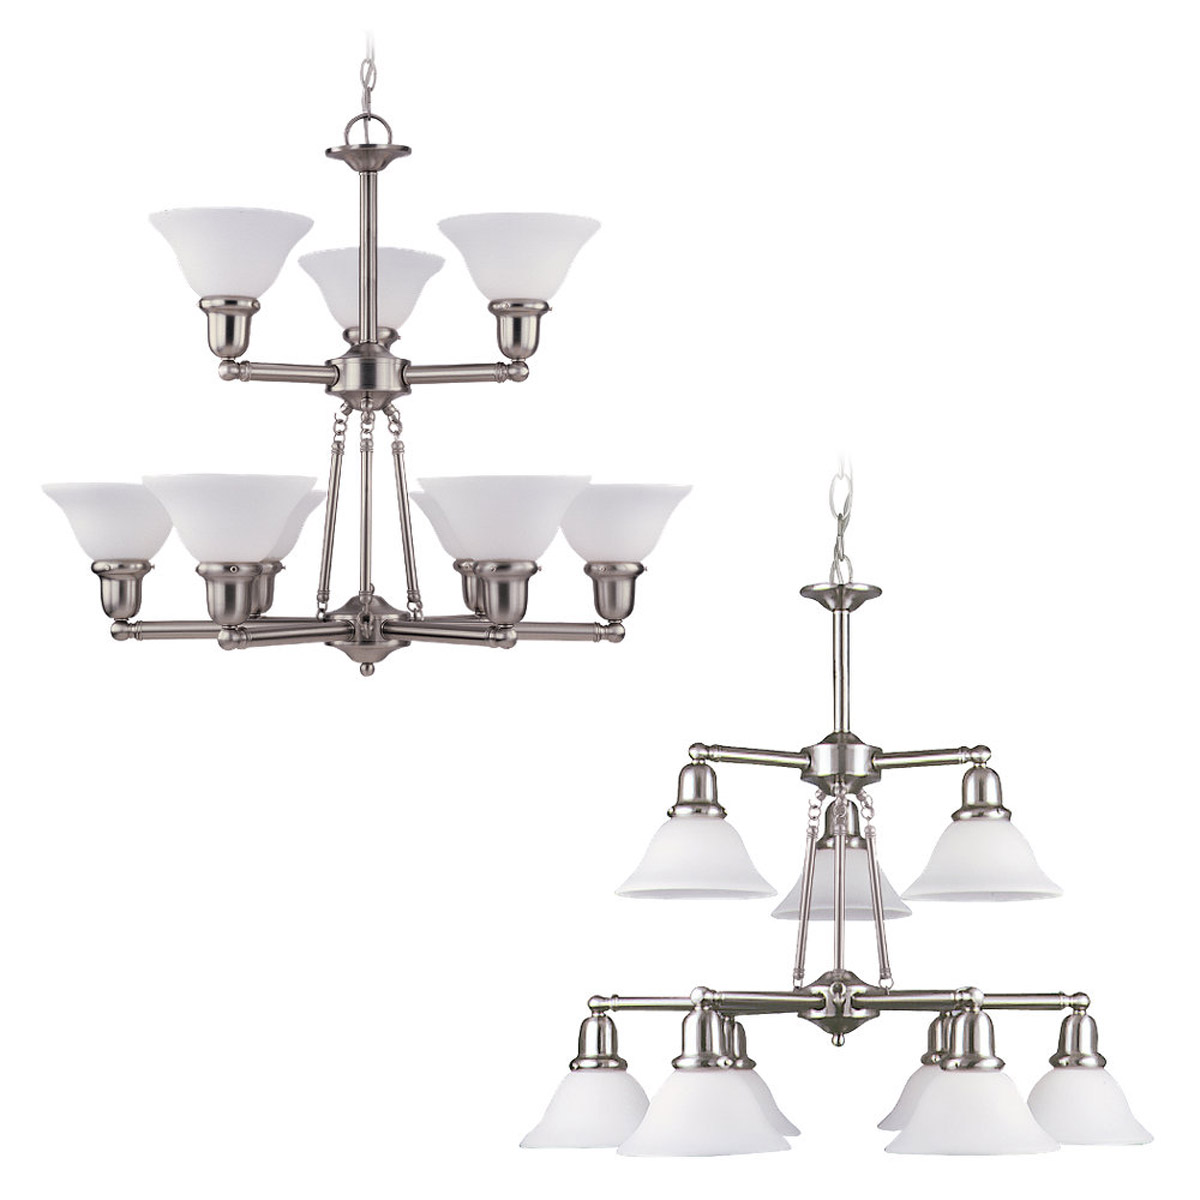 Sea Gull 31062-962 Sussex 9 Light 30 inch Brushed Nickel Chandelier Ceiling Light in Satin White Glass photo